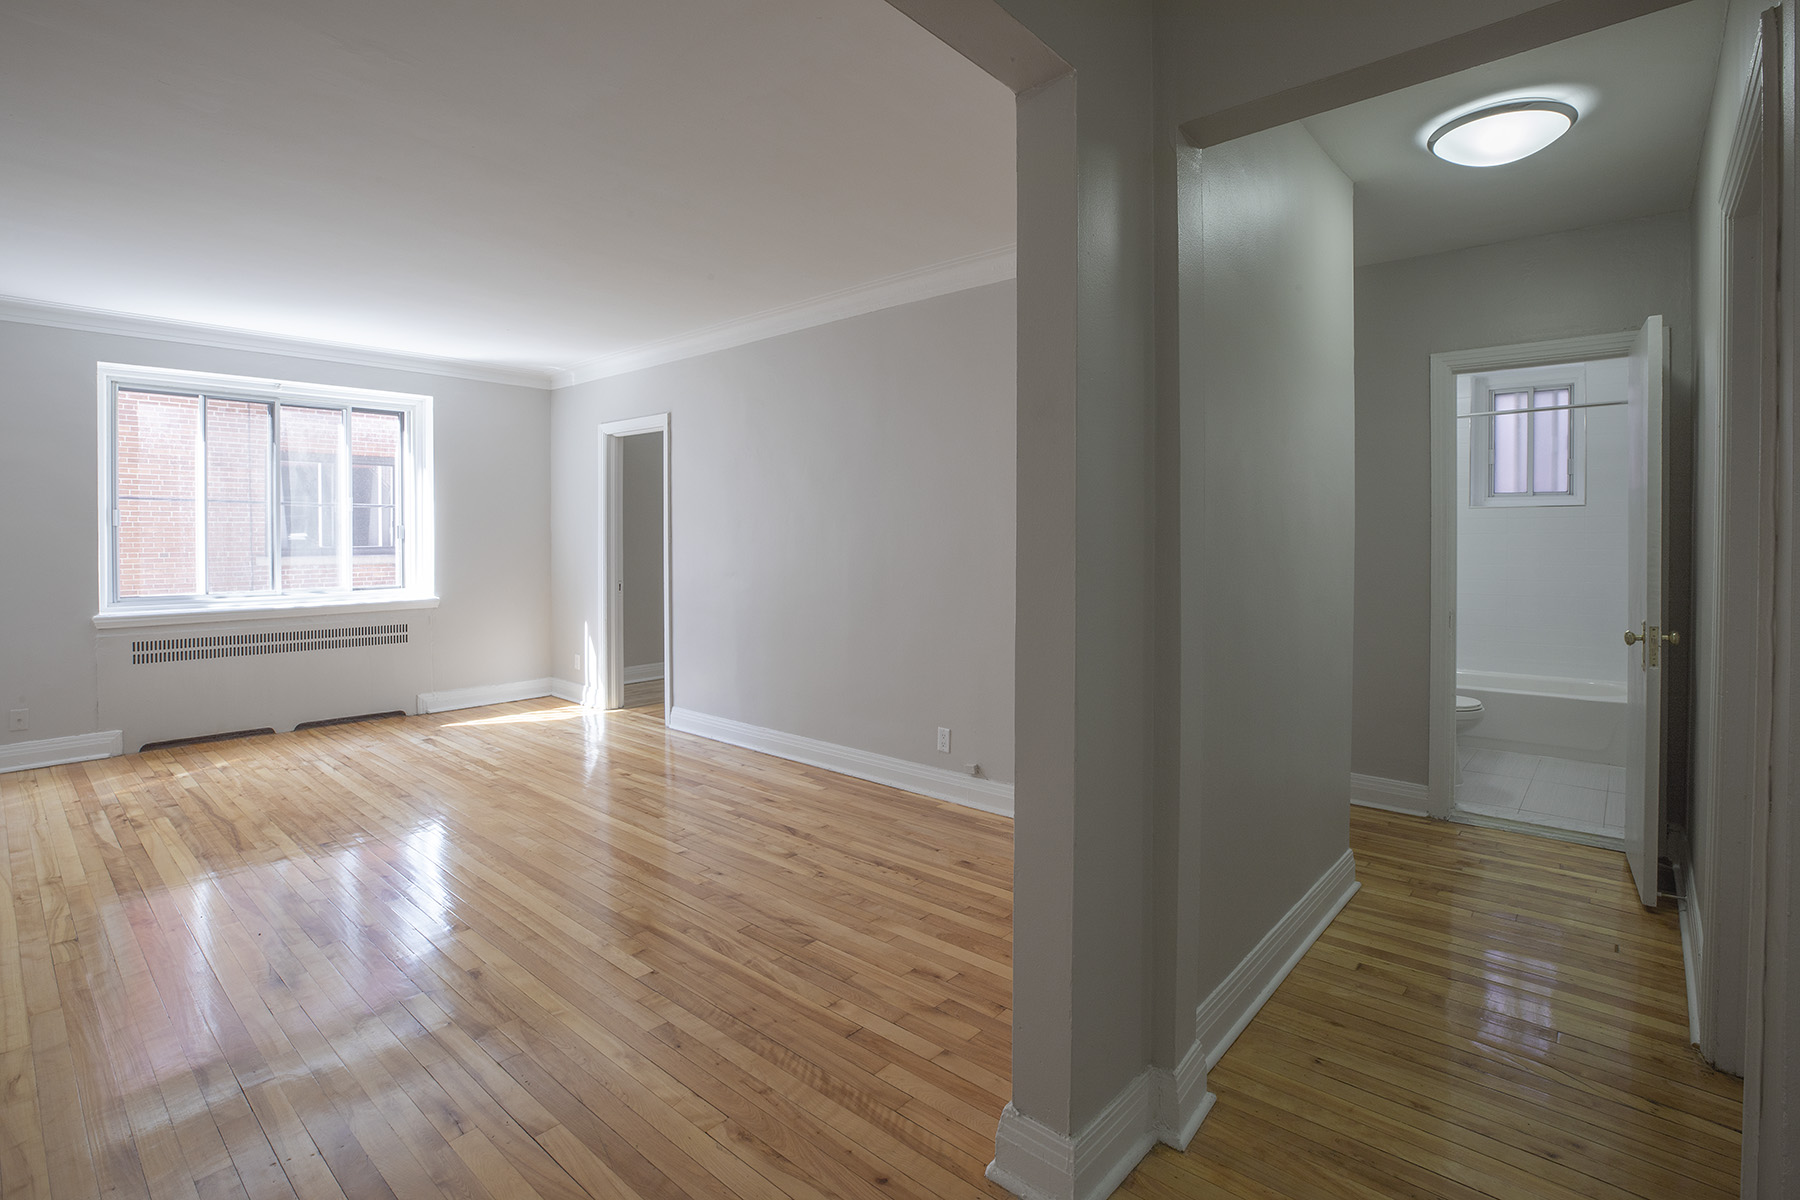 3 bedroom Apartments for rent in Cote-des-Neiges at 5000 Clanranald - Photo 14 - RentQuebecApartments – L401549